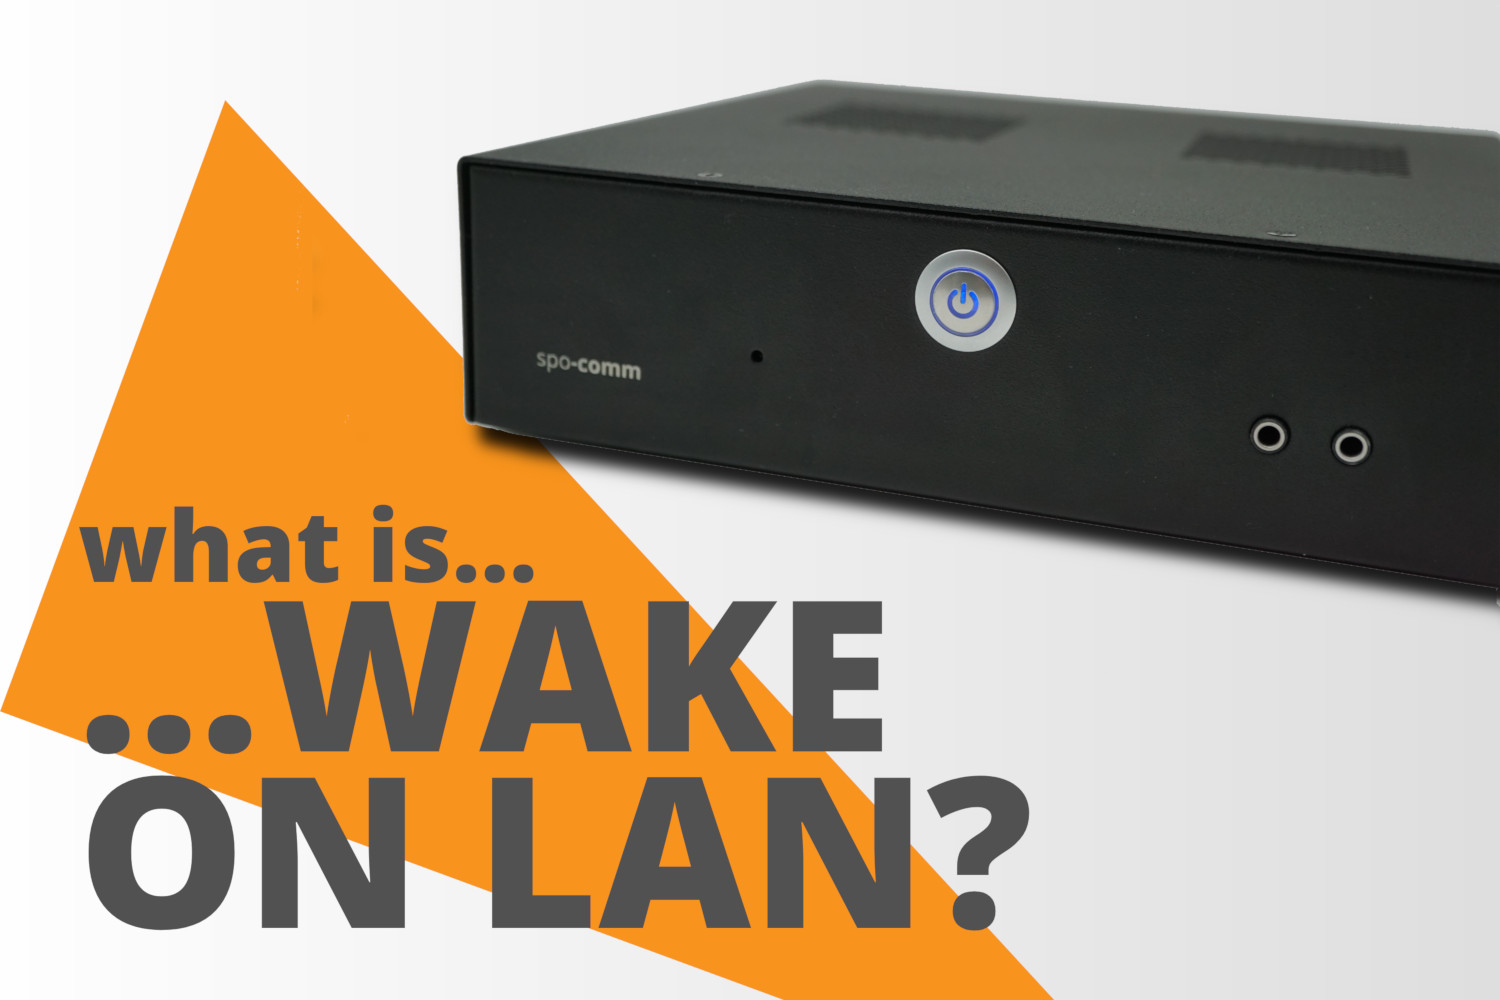 What is Wake on LAN?